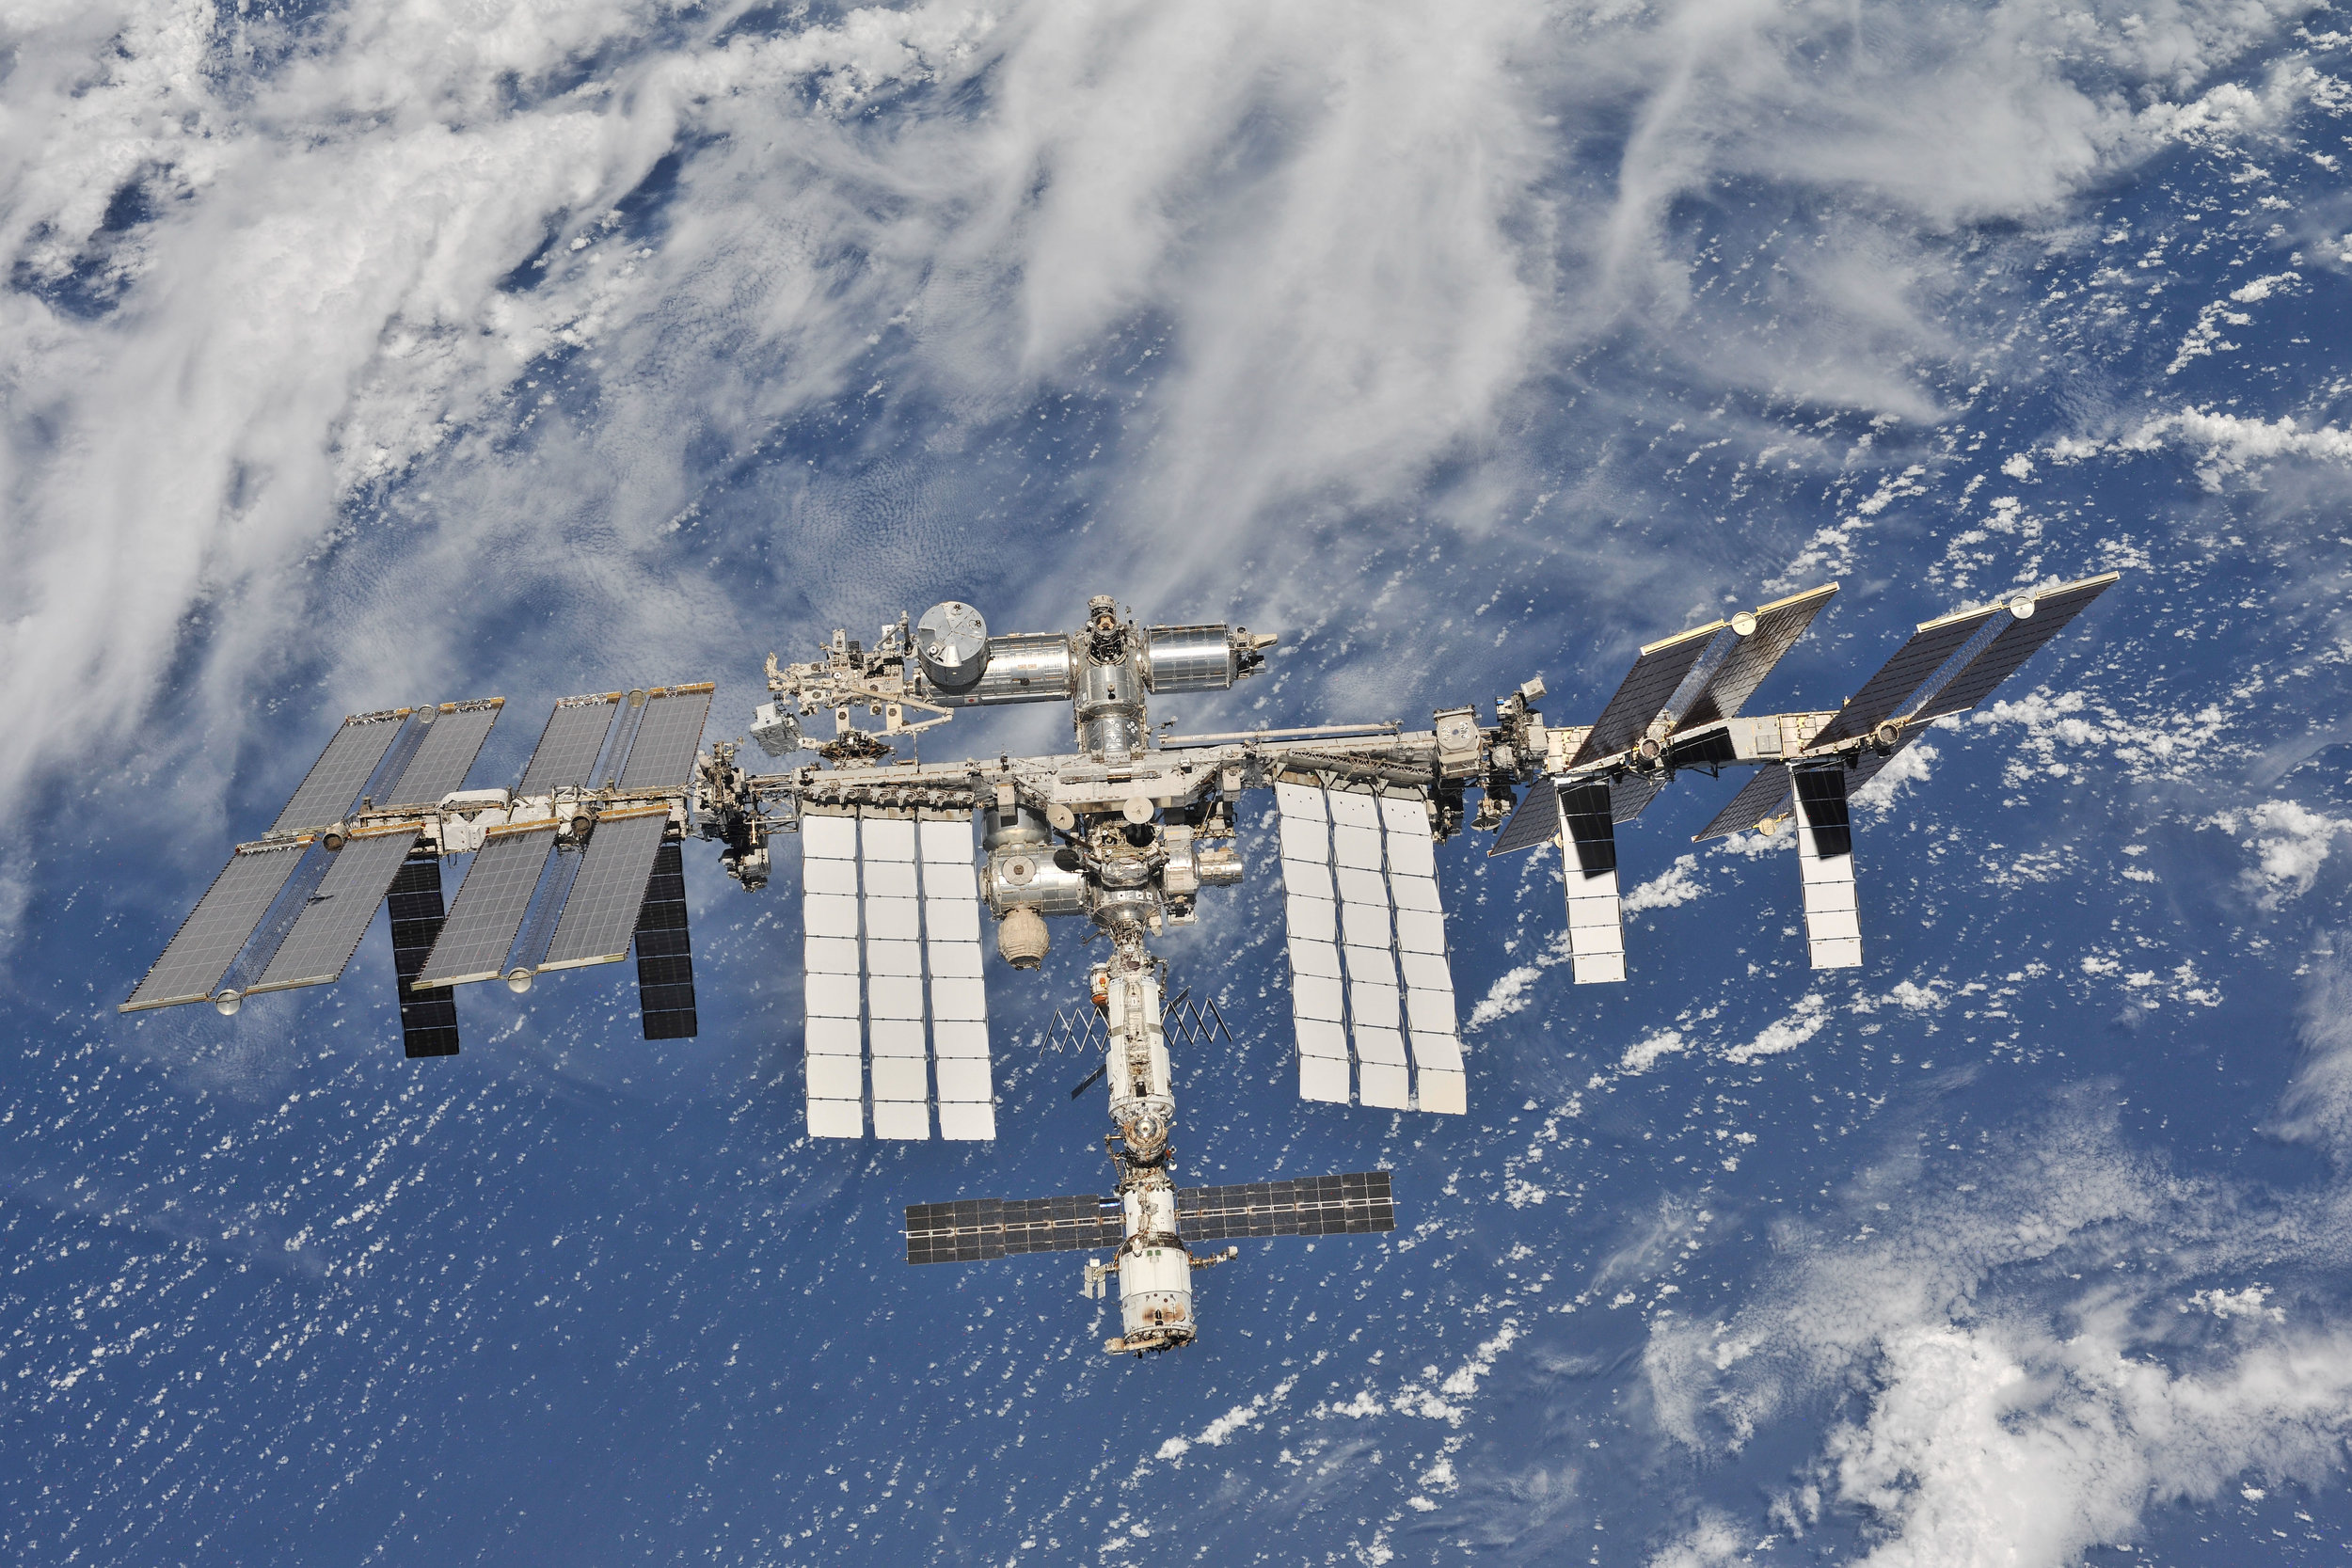 The International Space Station in 2018. Credit: NASA